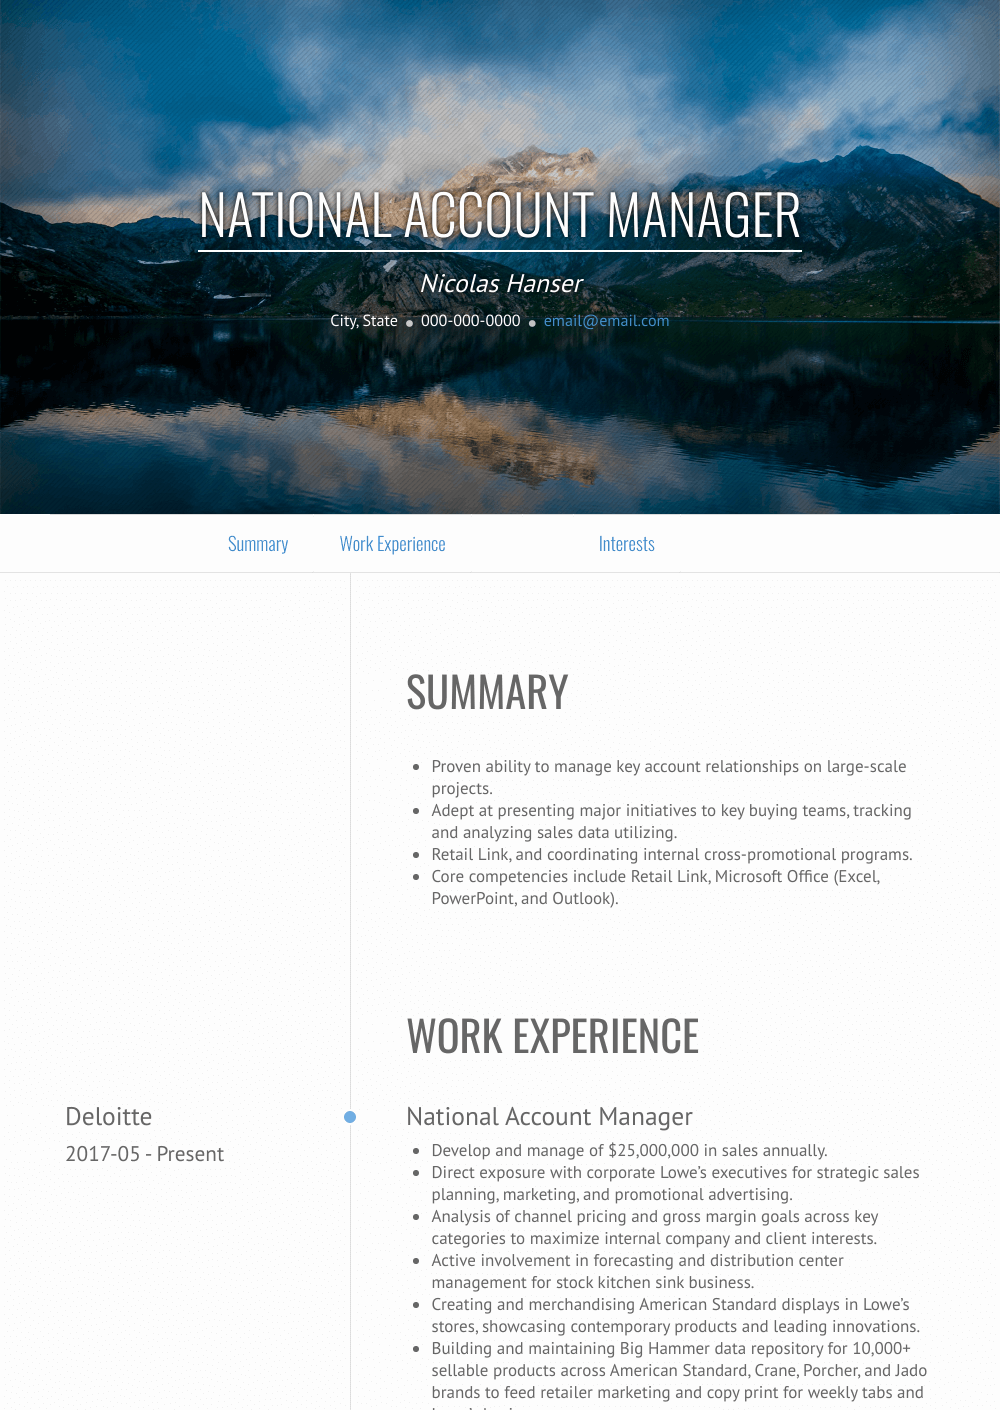 National Account Manager Resume Samples And Templates